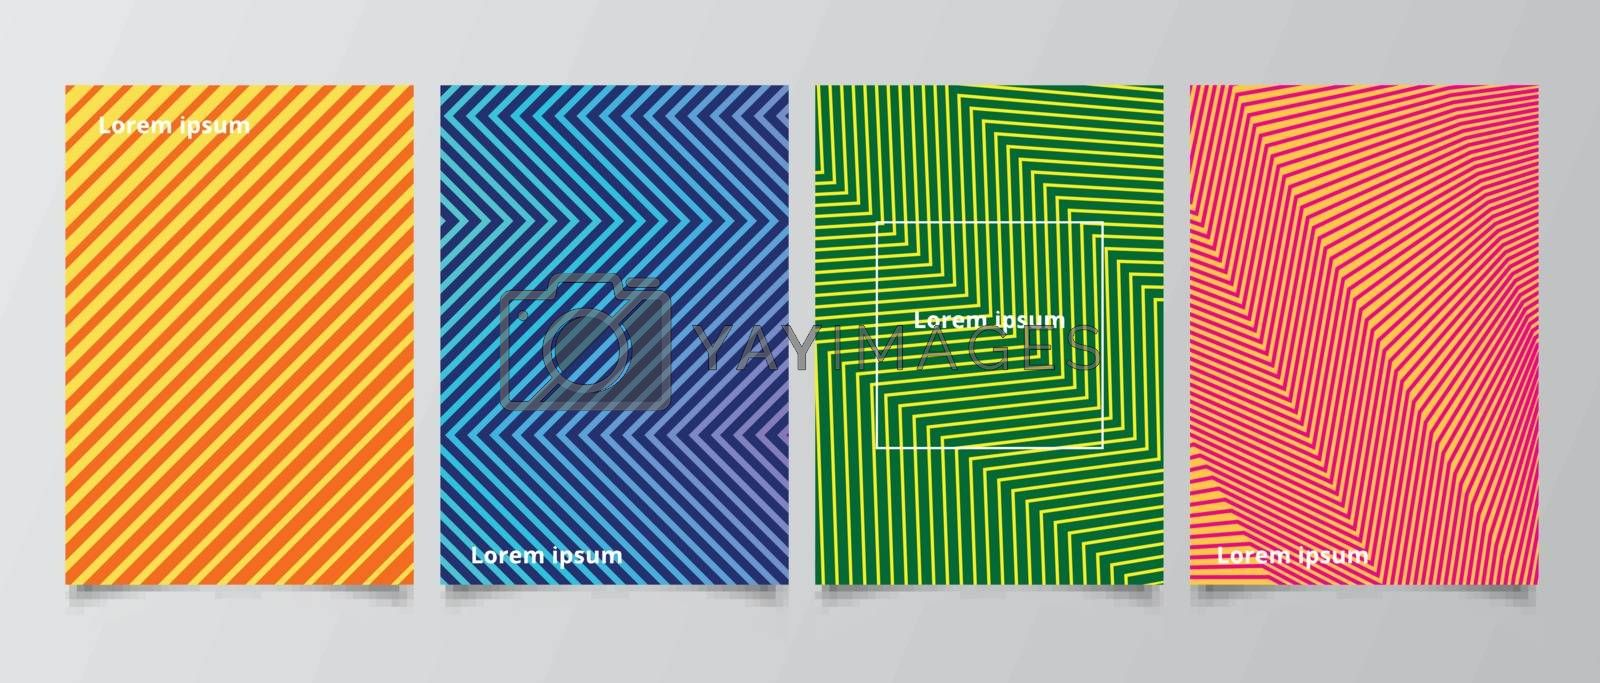 Template minimal covers design abstract pattern gradient backgro by phochi